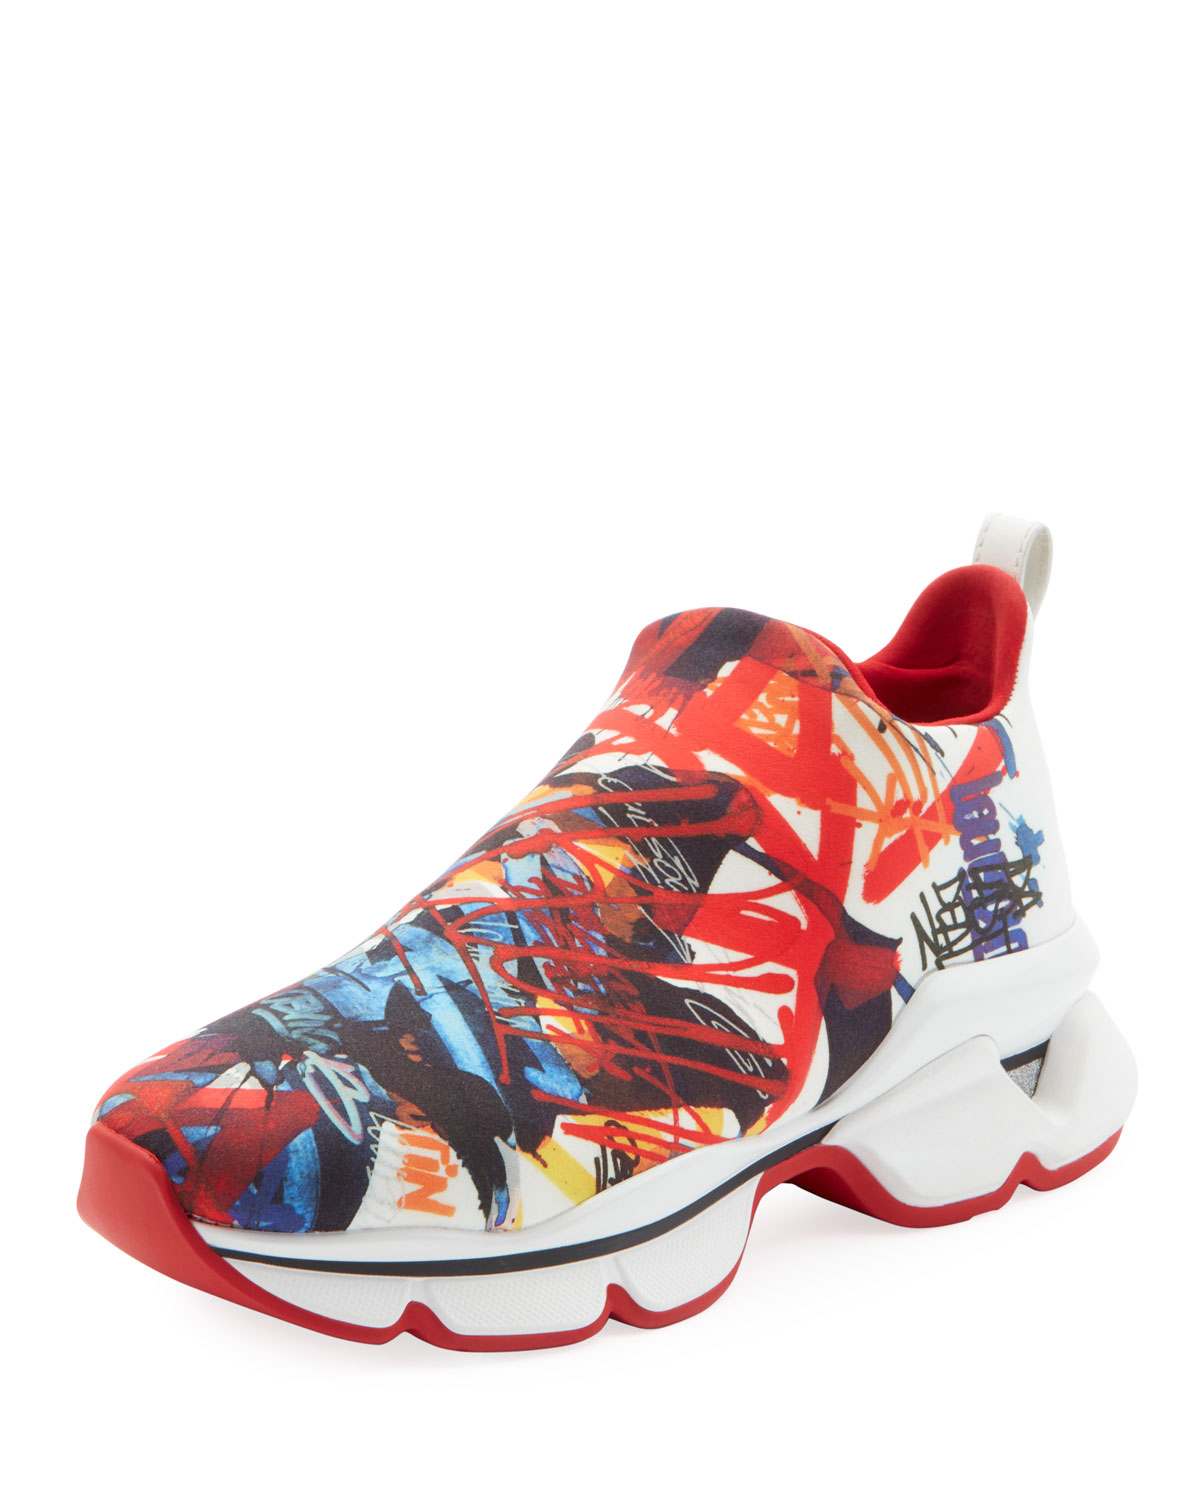 Space Run Donna Red Sole Sneakers